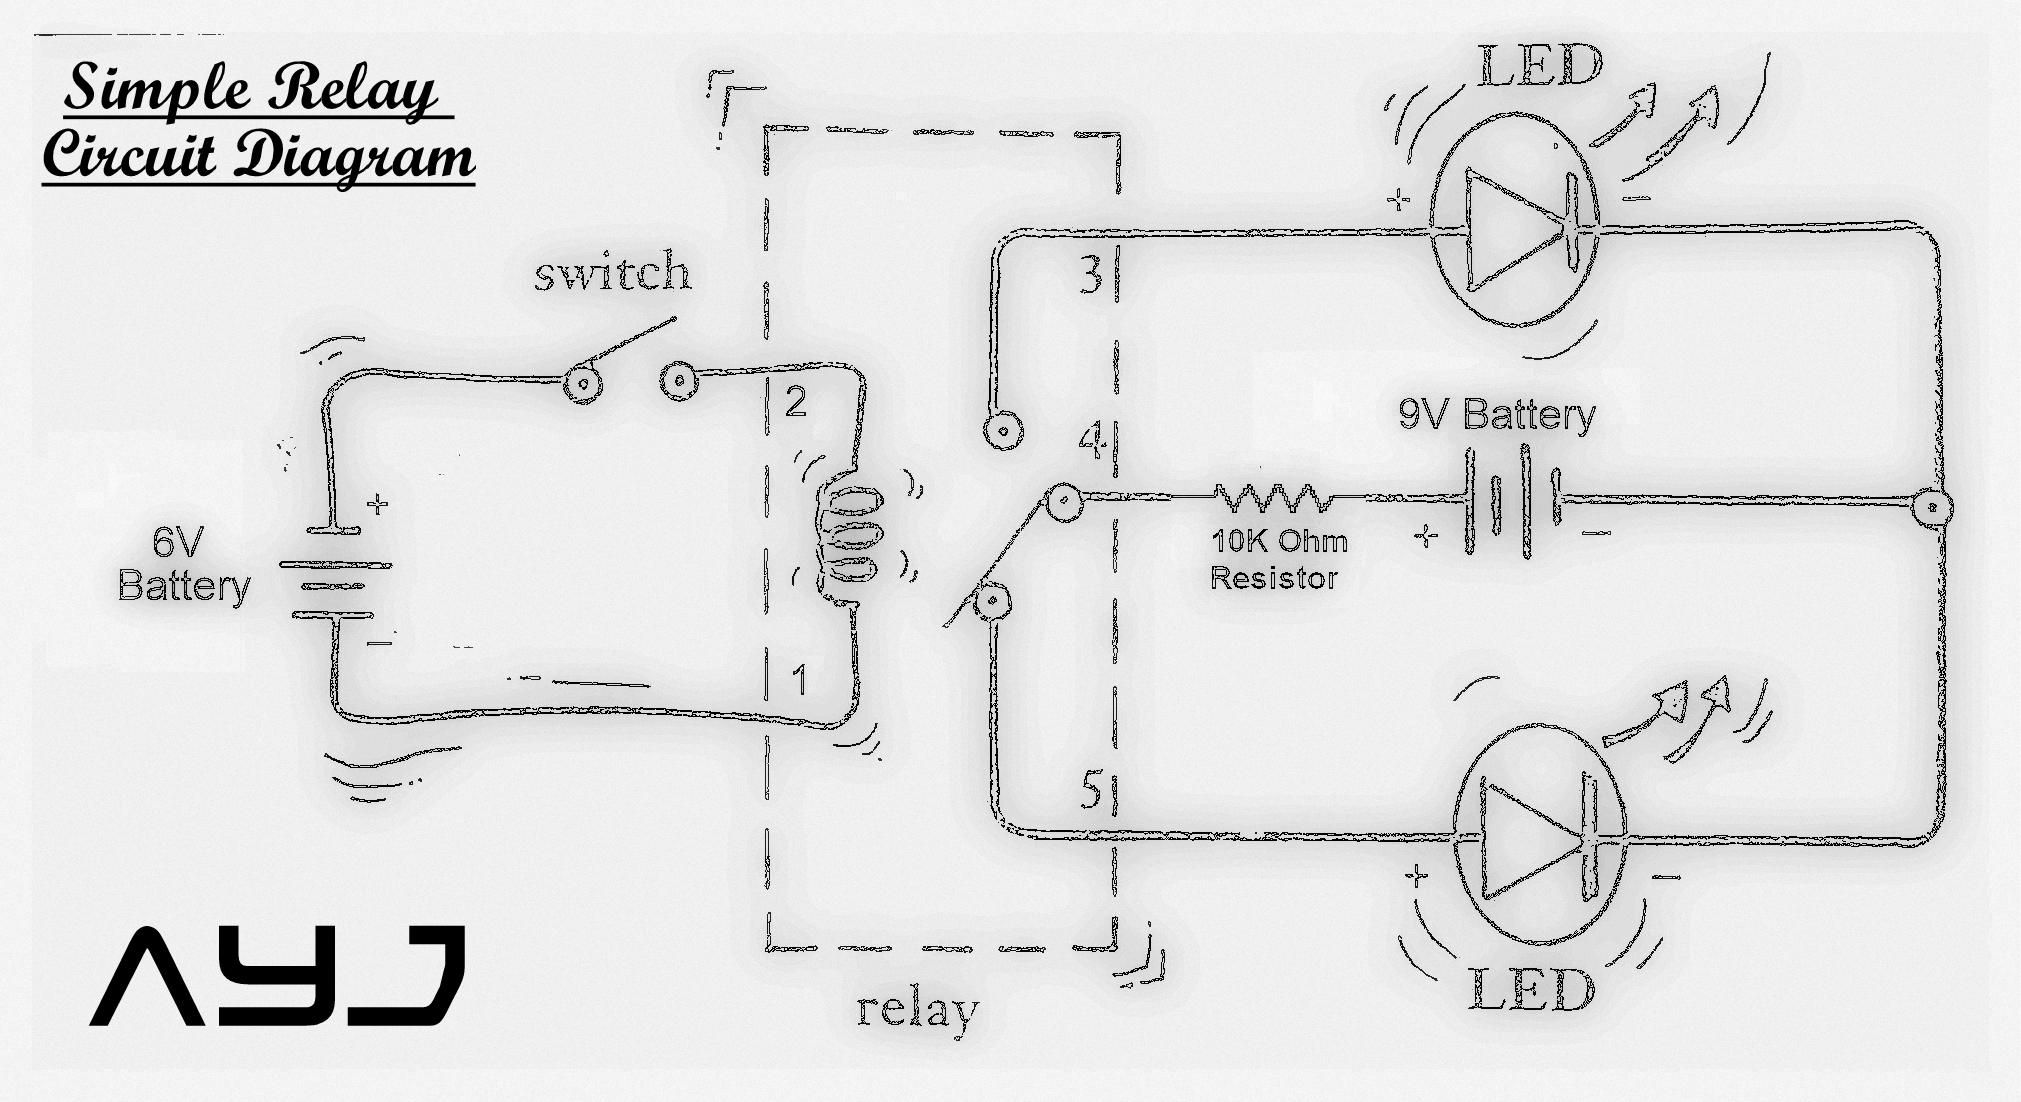 Simple Relay Circuit Diagram Electronics And Electrical Electronically Designed Dice Game By Lm555 Projects Circuits To